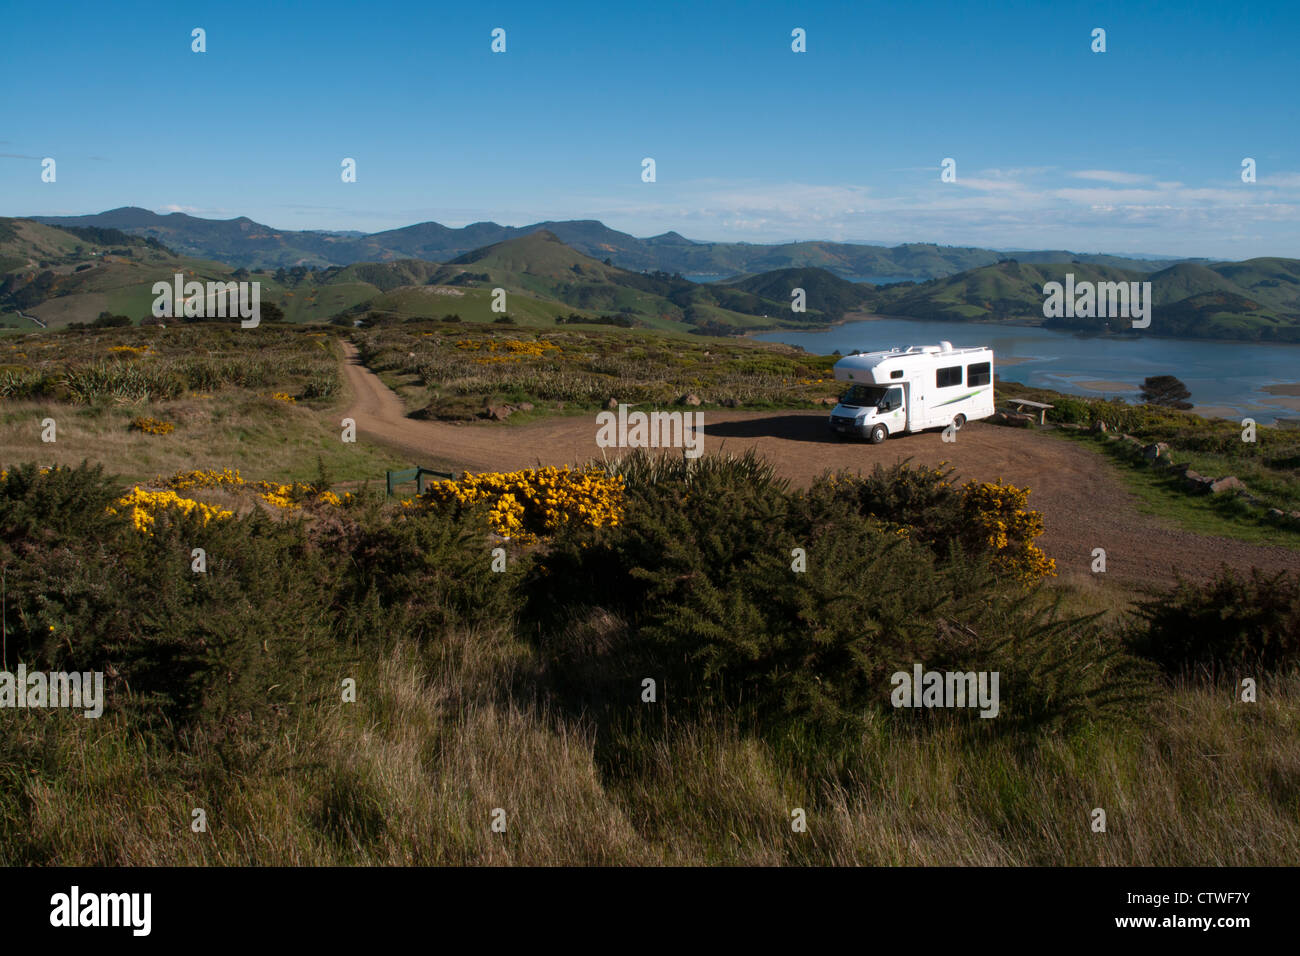 Kea Campervan at the very end of the Sandymount Road on Otago Peninsula in New Zealand.  Ein Wohnmobil am Ende der - Stock Image